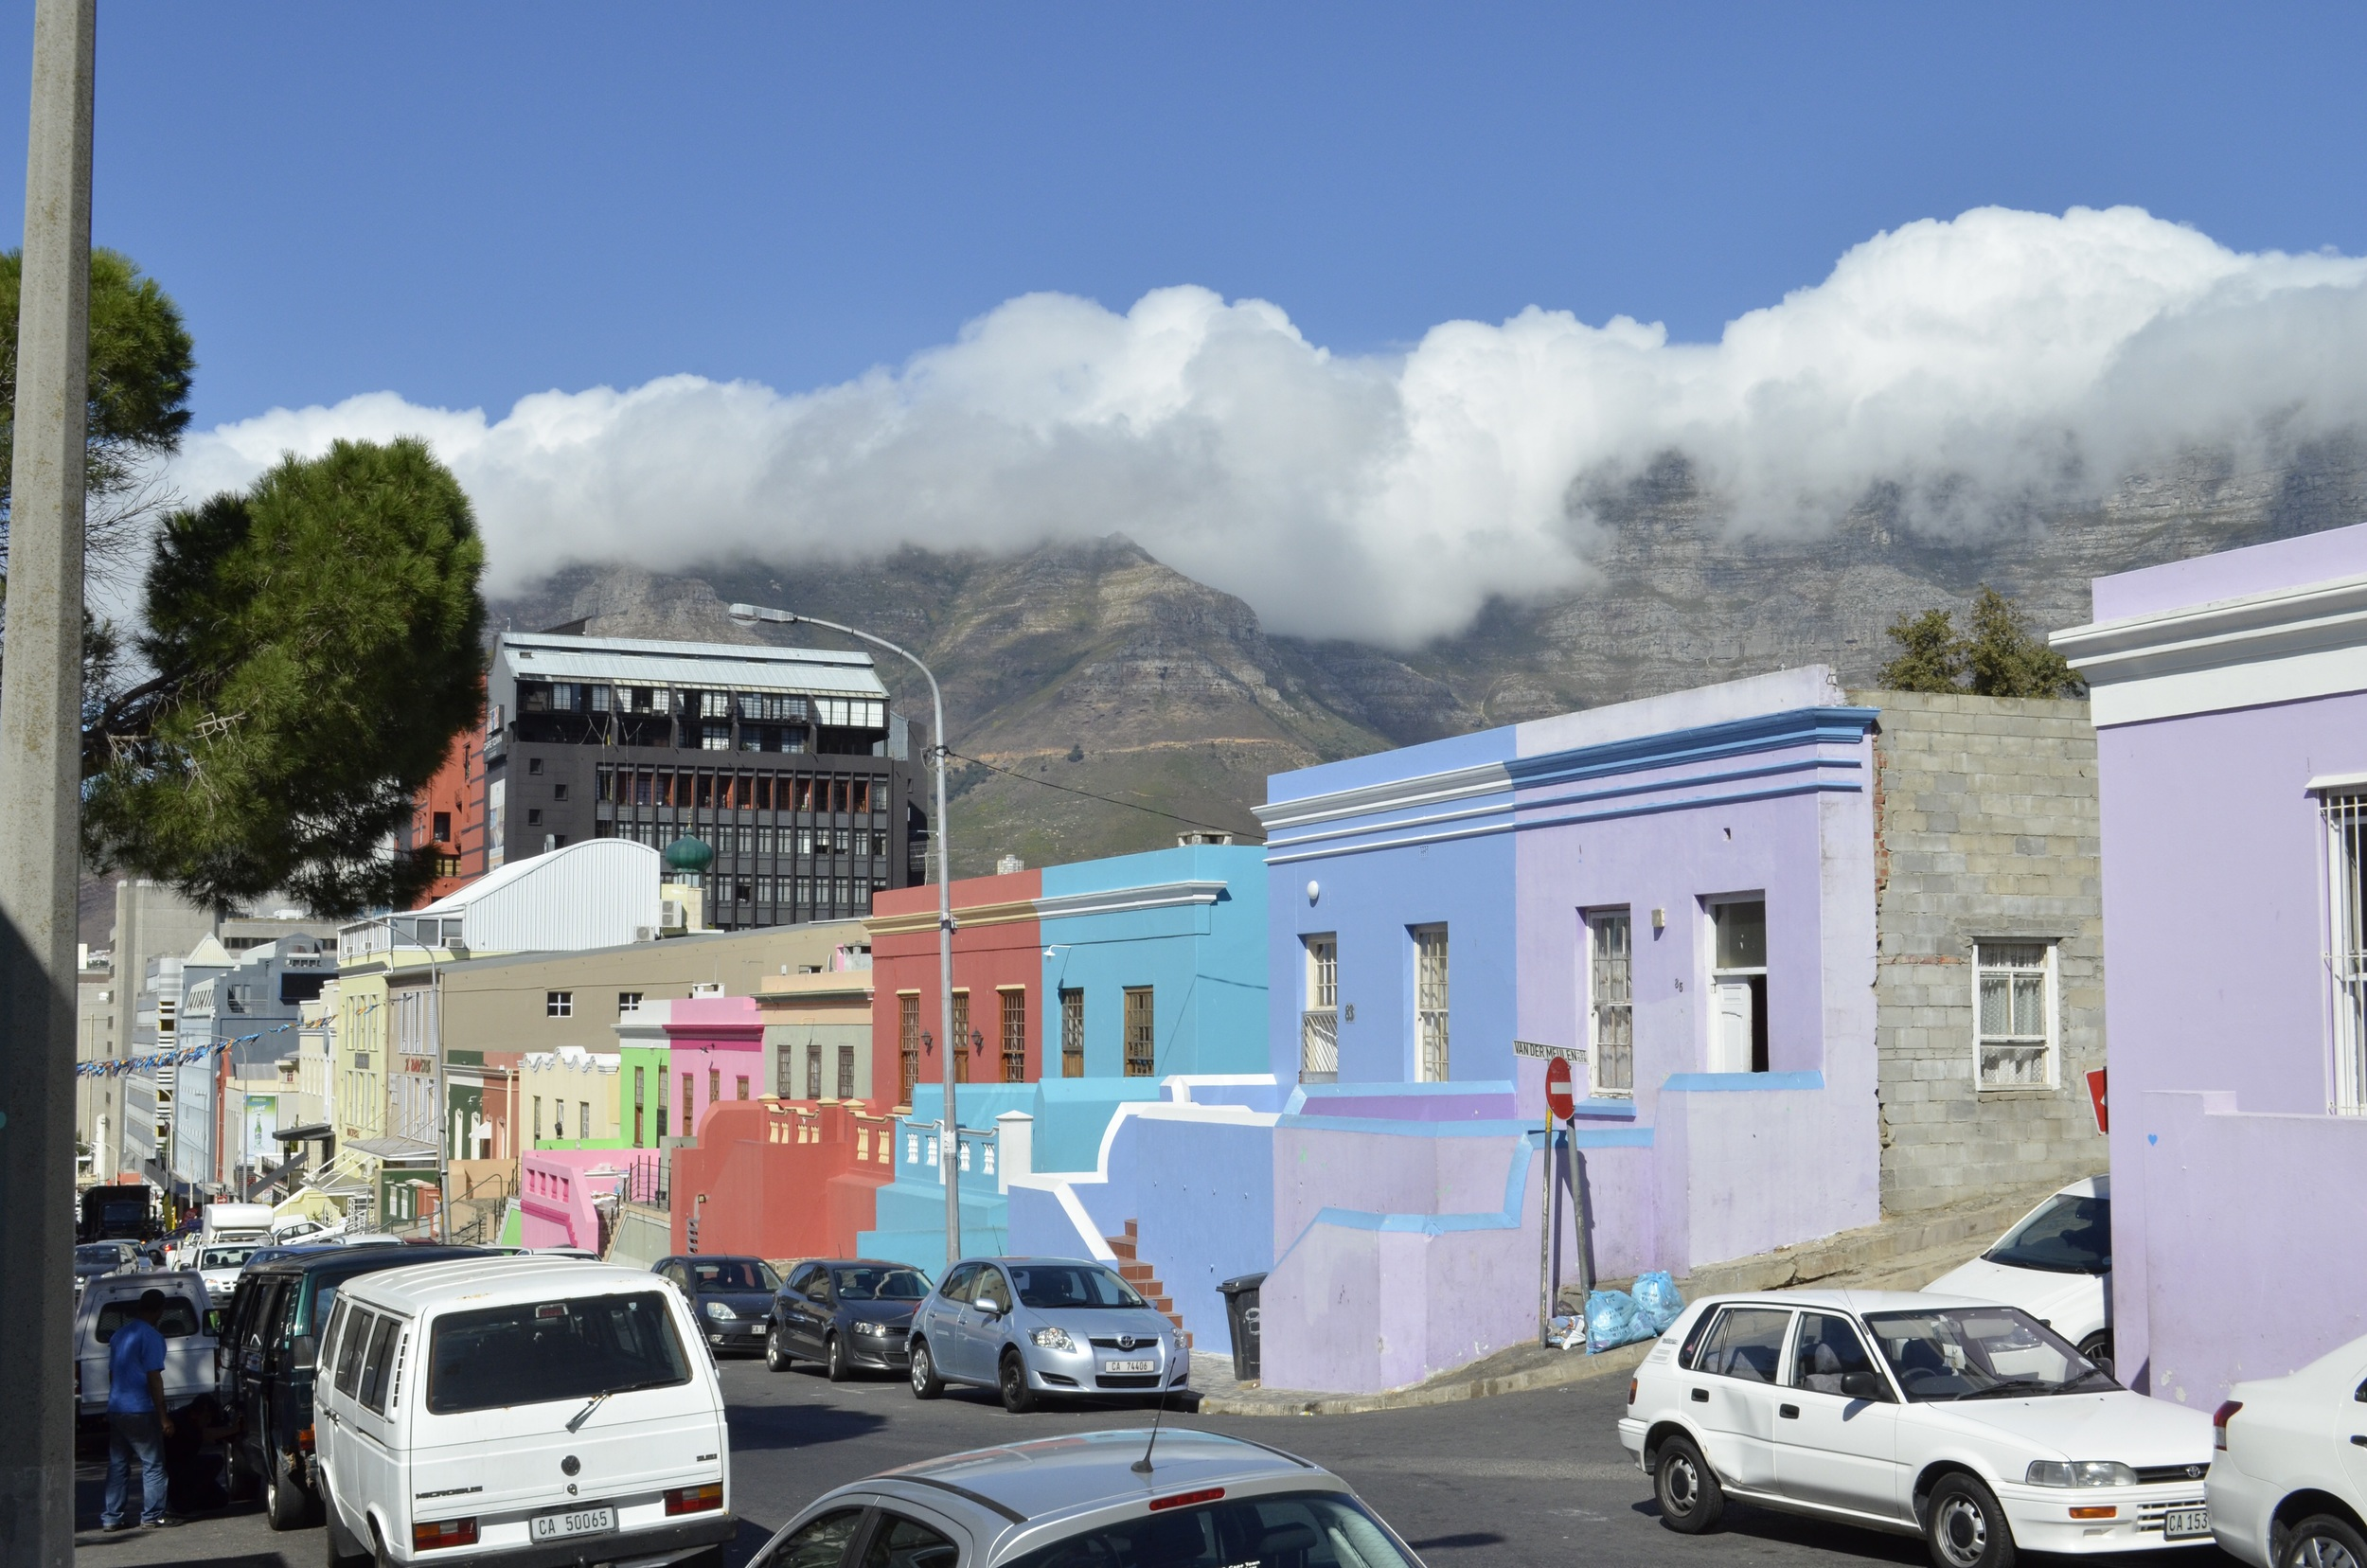 The tablecloth over the mountain behind Bo Kaap.  Note the new development encroaching on the historic neighborhood.